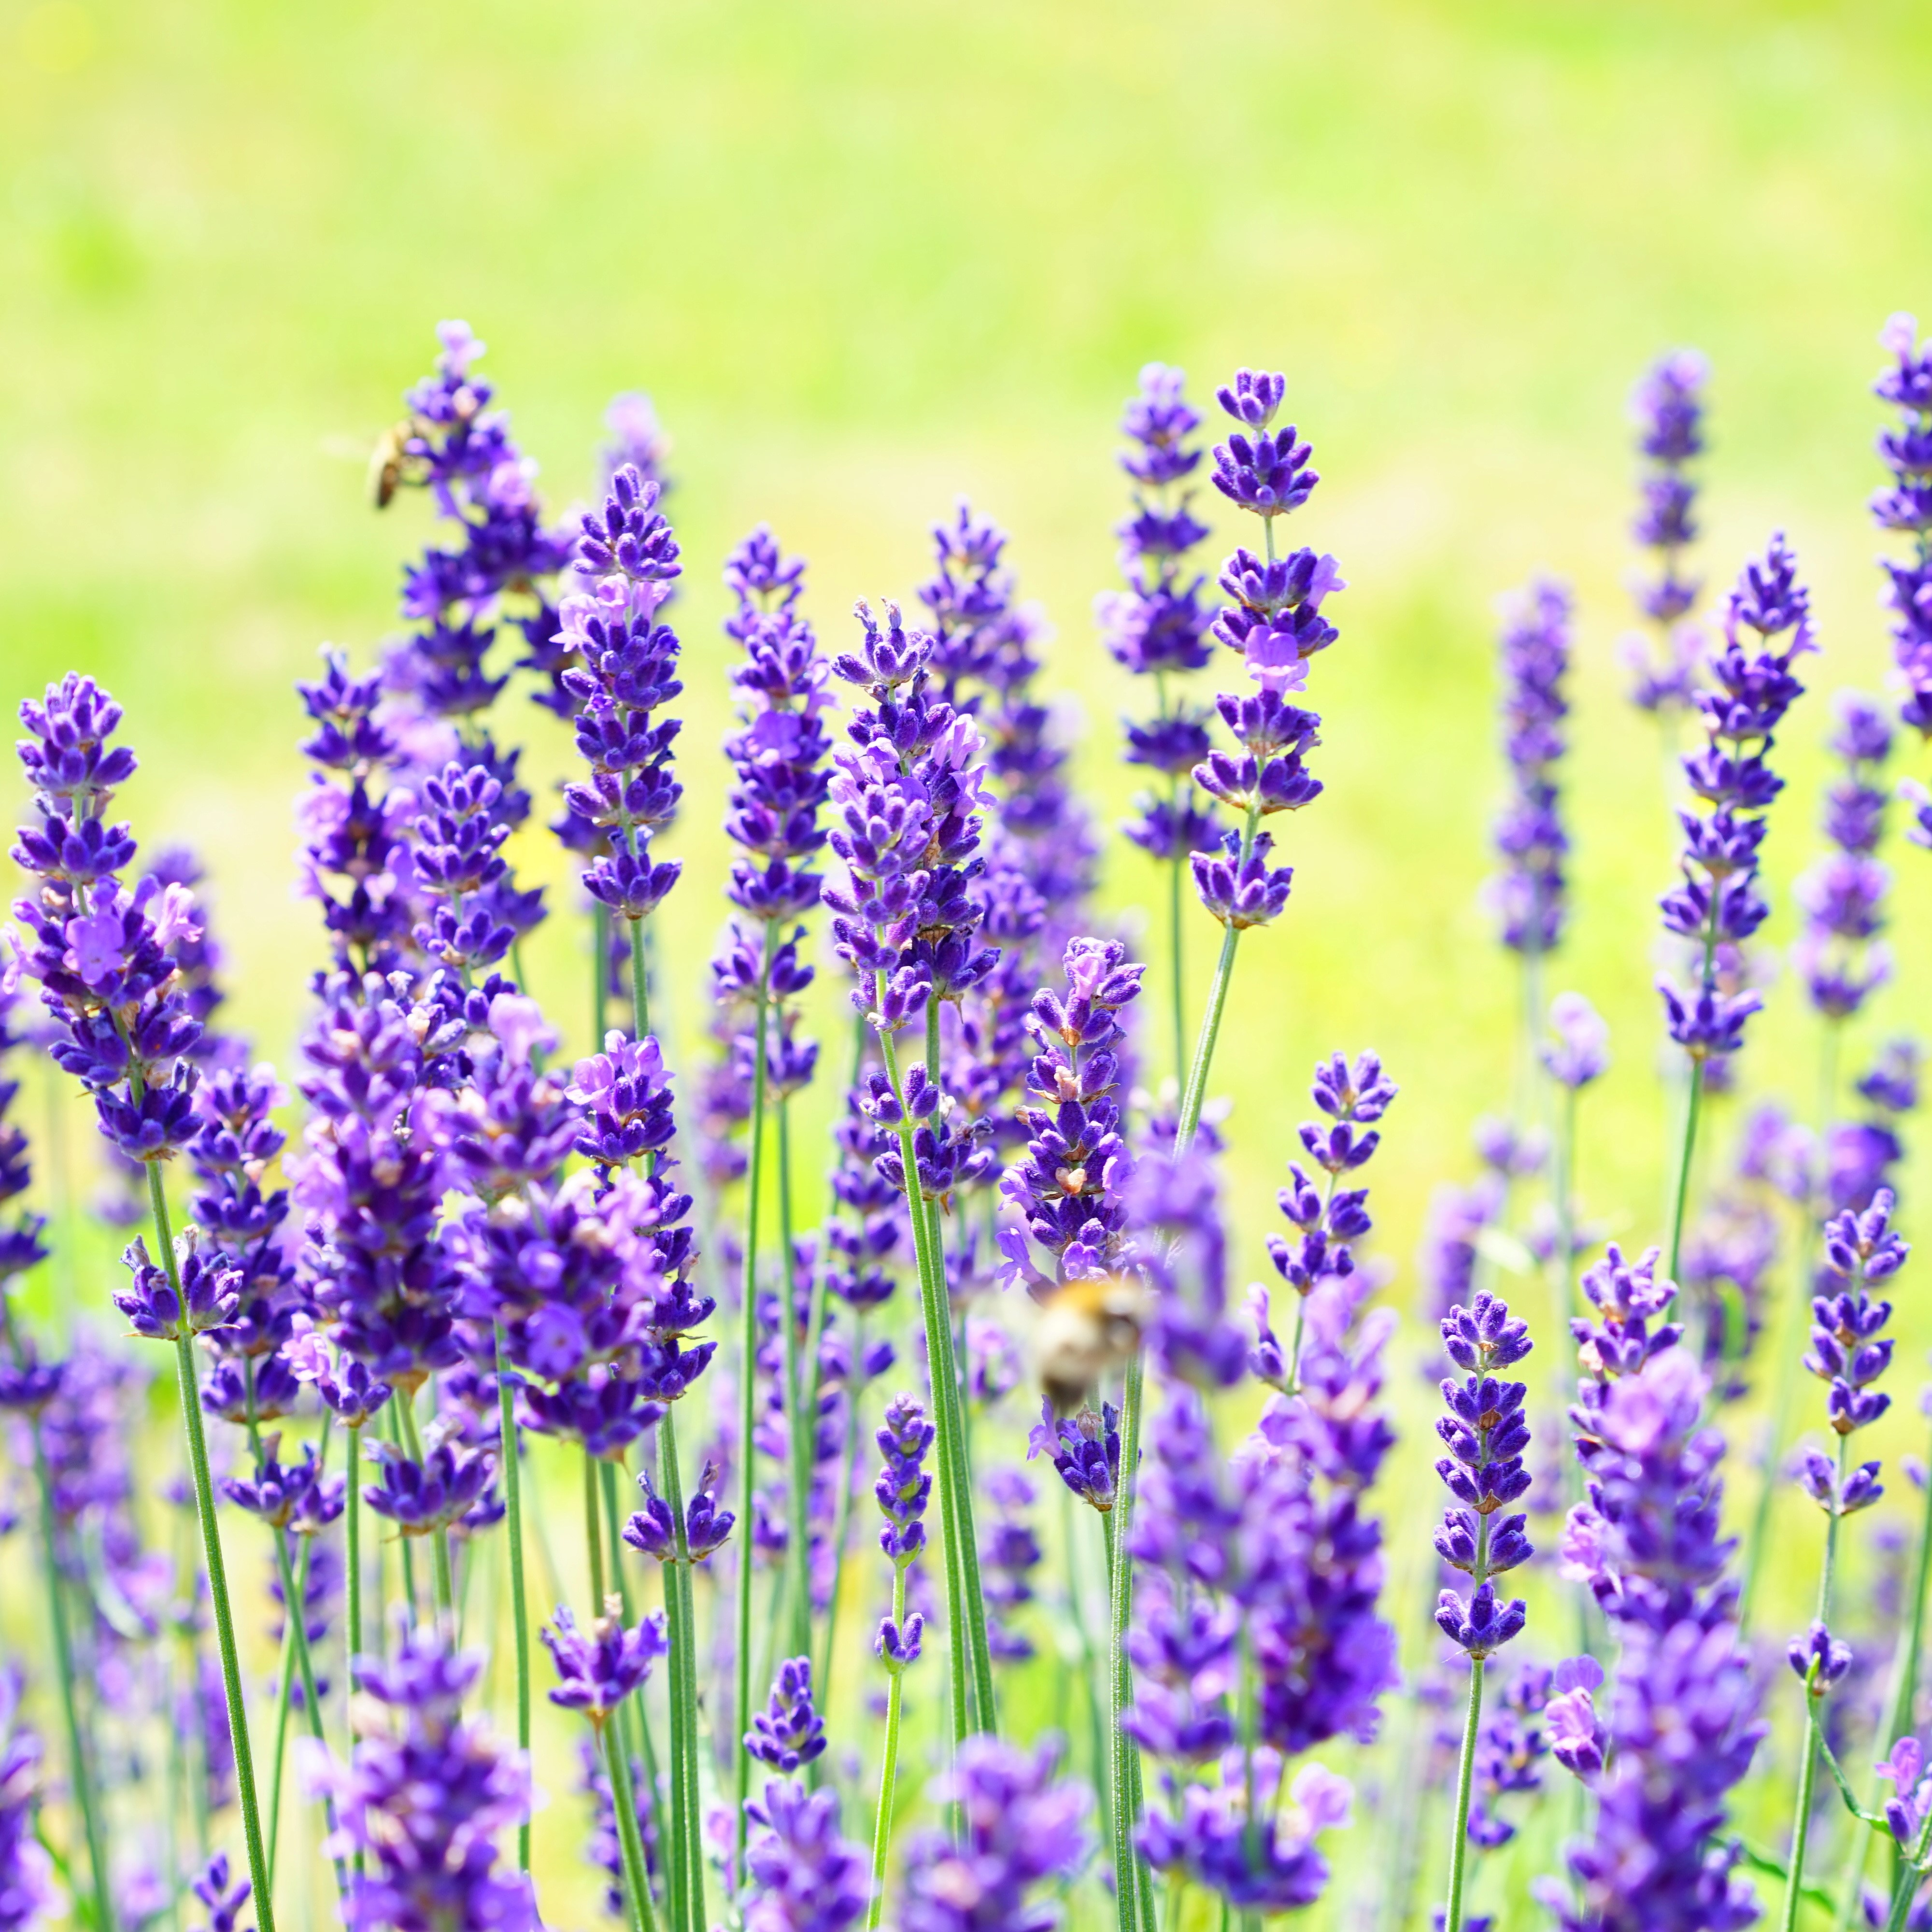 Canva_-_Lavender_Flowers_in_the_Field.jpg